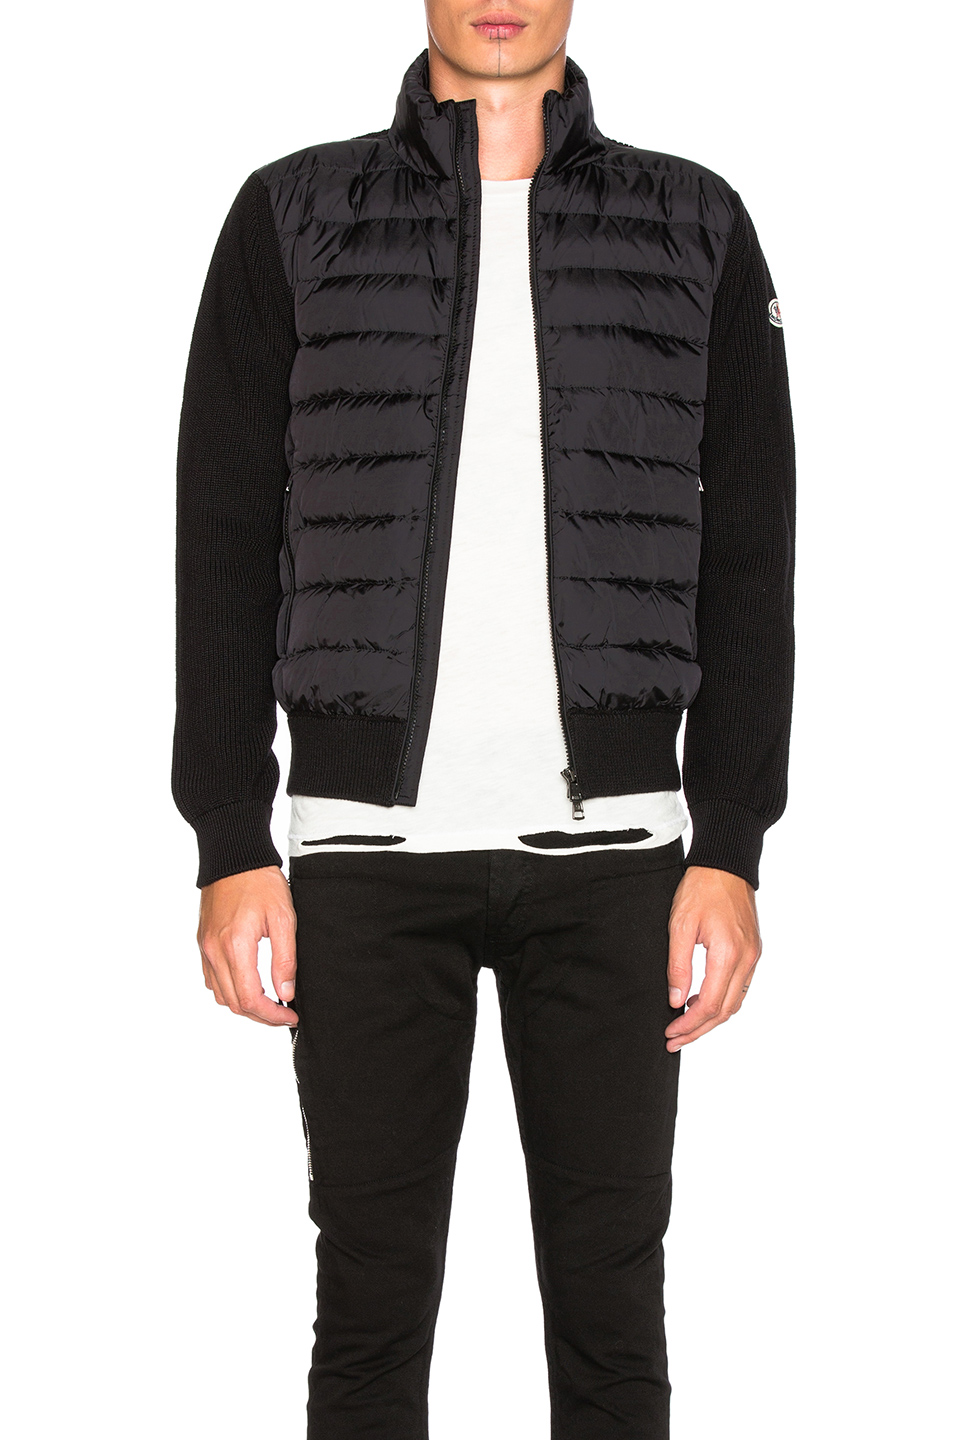 Moncler Maglione Tricot Cardigan in Black